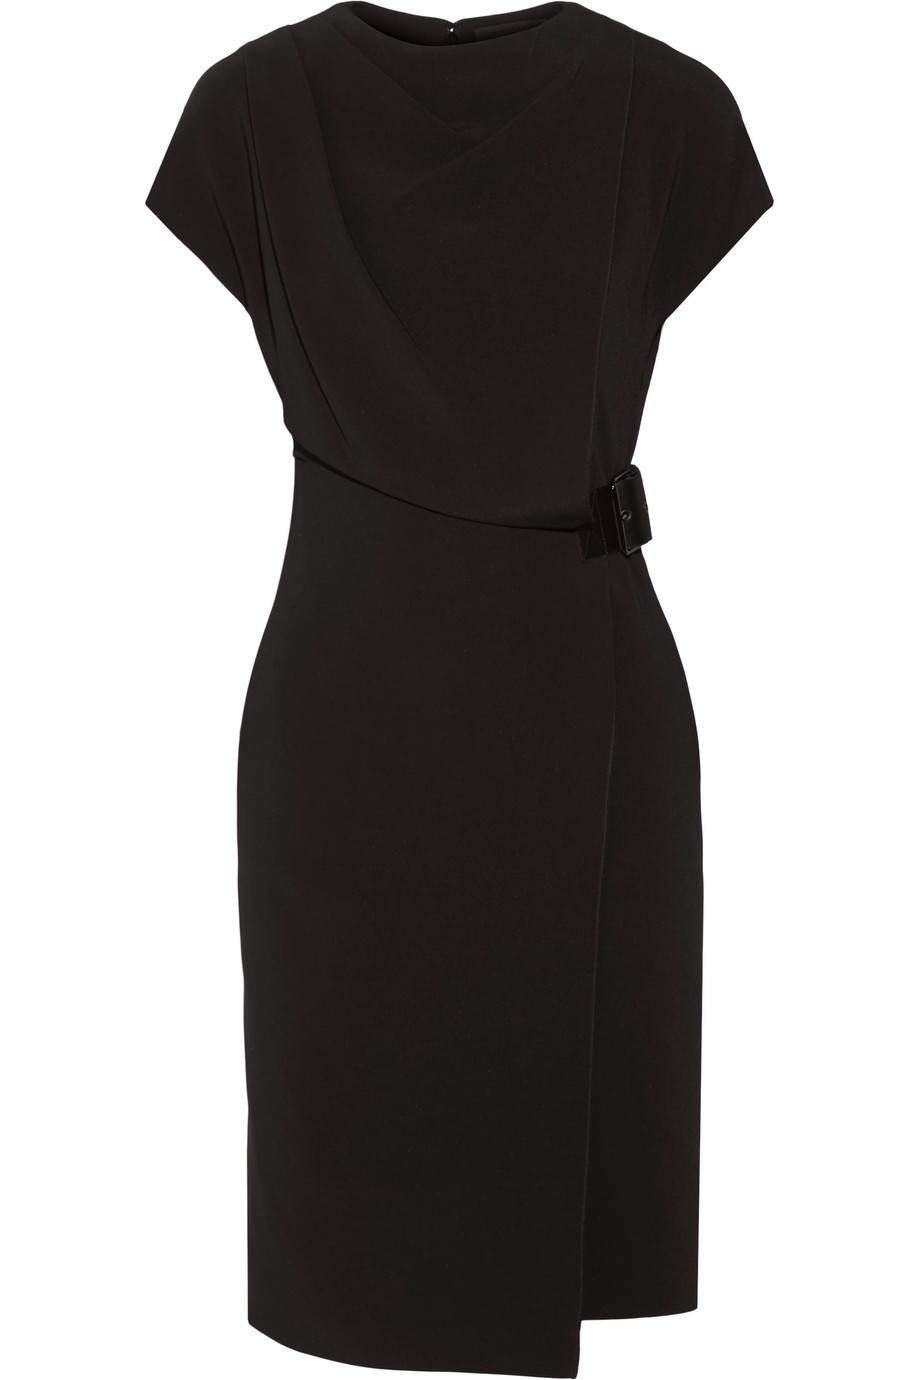 Alexander Wang Belted Wrap-Effect Stretch-Crepe Dress, Black, Women's, Size: 0